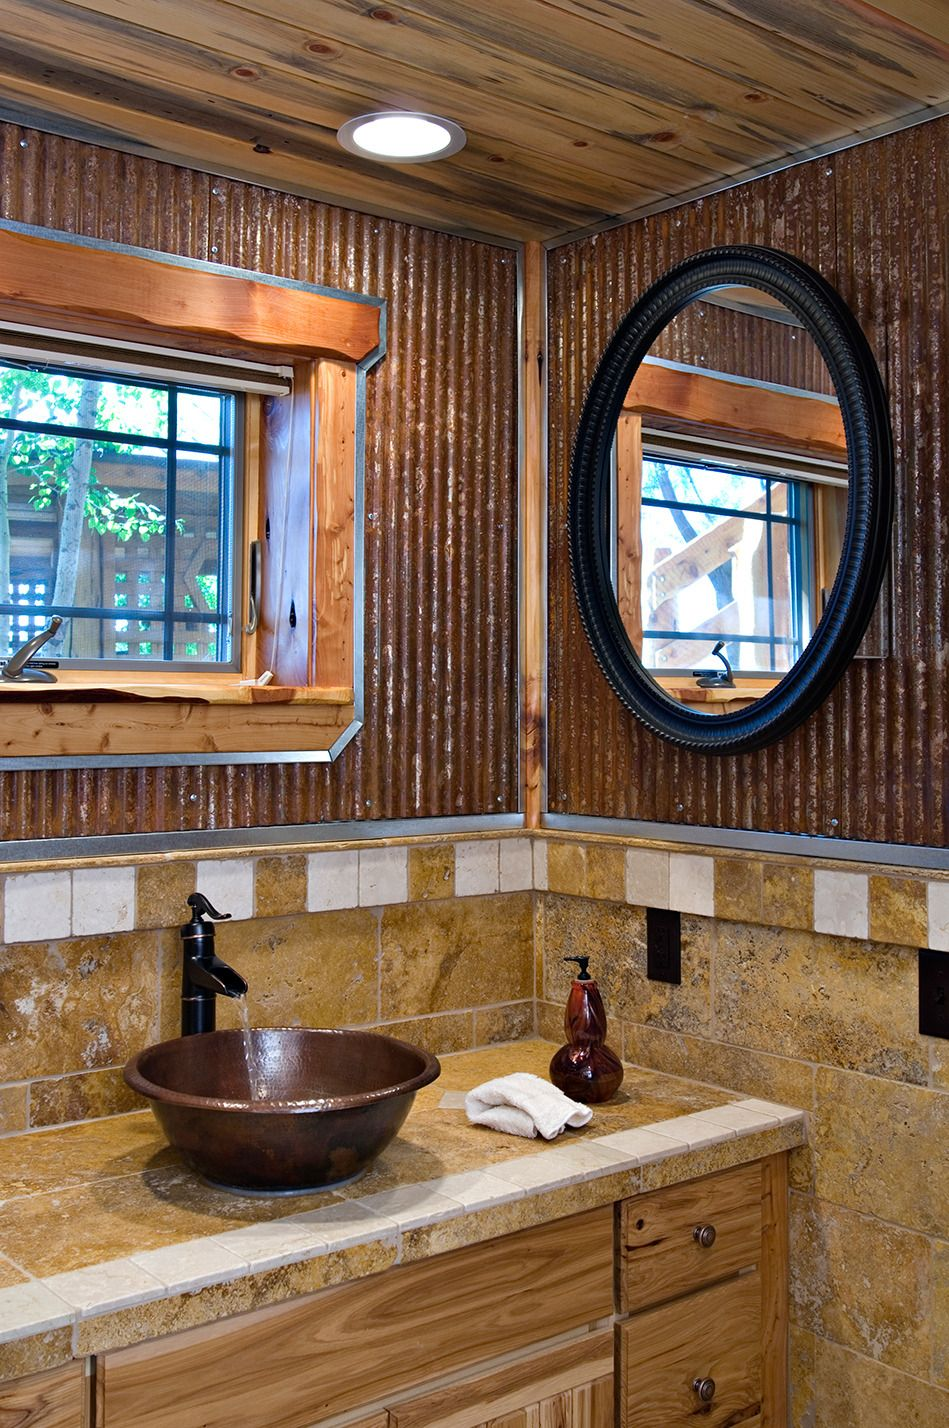 1 1 4 Corrugated Looks Great In This Rustic Bathroom